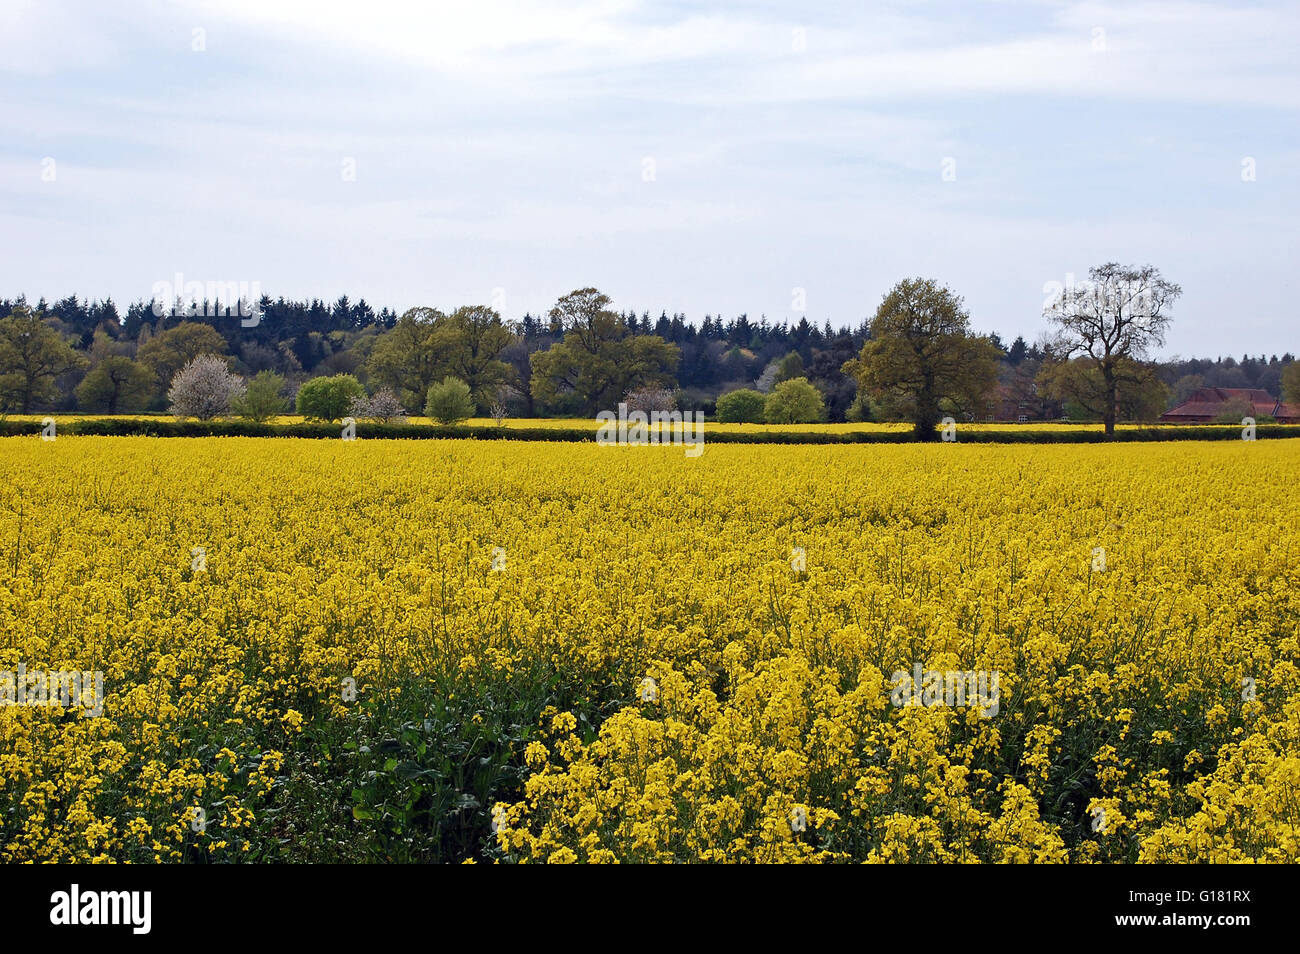 The bright yellow flowers of a rapeseed crop in the english stock the bright yellow flowers of a rapeseed crop in the english countryside at springtime with blossoming trees in the background mightylinksfo